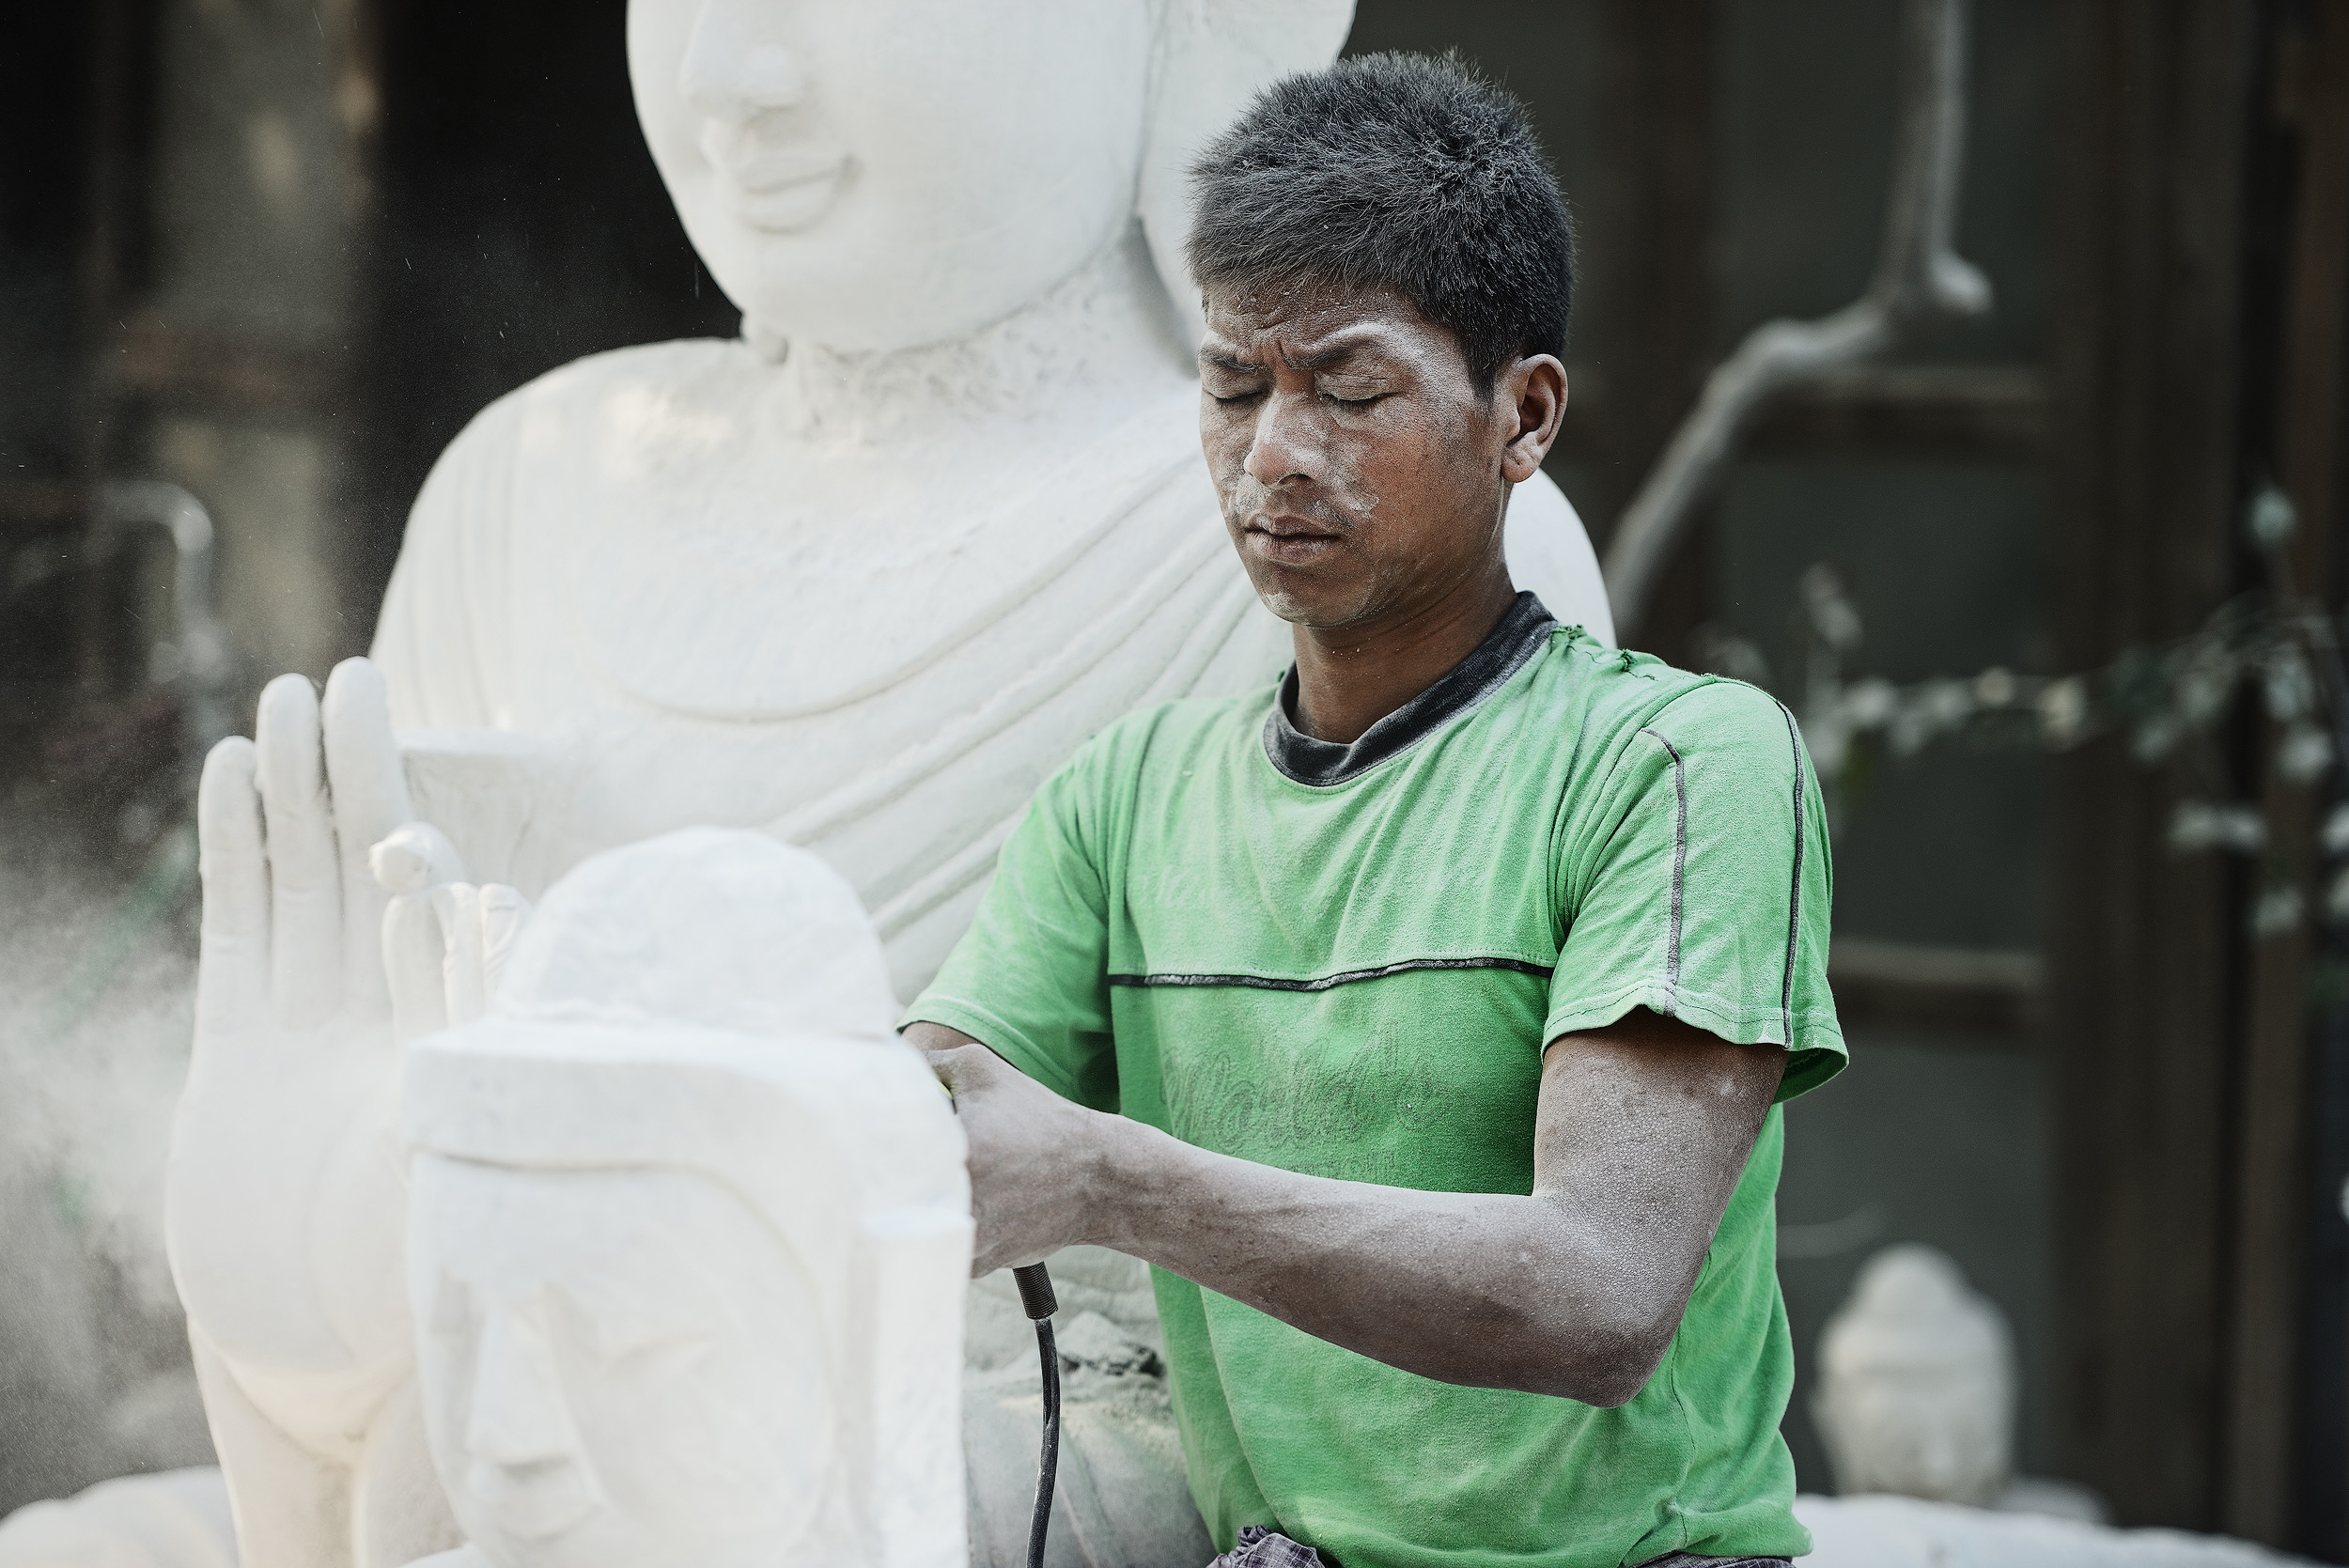 The Stone Carver   Scattered at roadsides throughout Amarapura and Mandalay are lots of stone carvers who shape and carve slabs of stone into buddhas of all shapes and sizes. Watching the carvers work on buddhas in various states of completion is a fascinating process as they hone the statues into their finished forms. It's brutal work and after just a few minutes standing watching you'll feel the dust in your eyes and throat and yet the men here work without goggles or masks breathing the dust all day long, day after day.